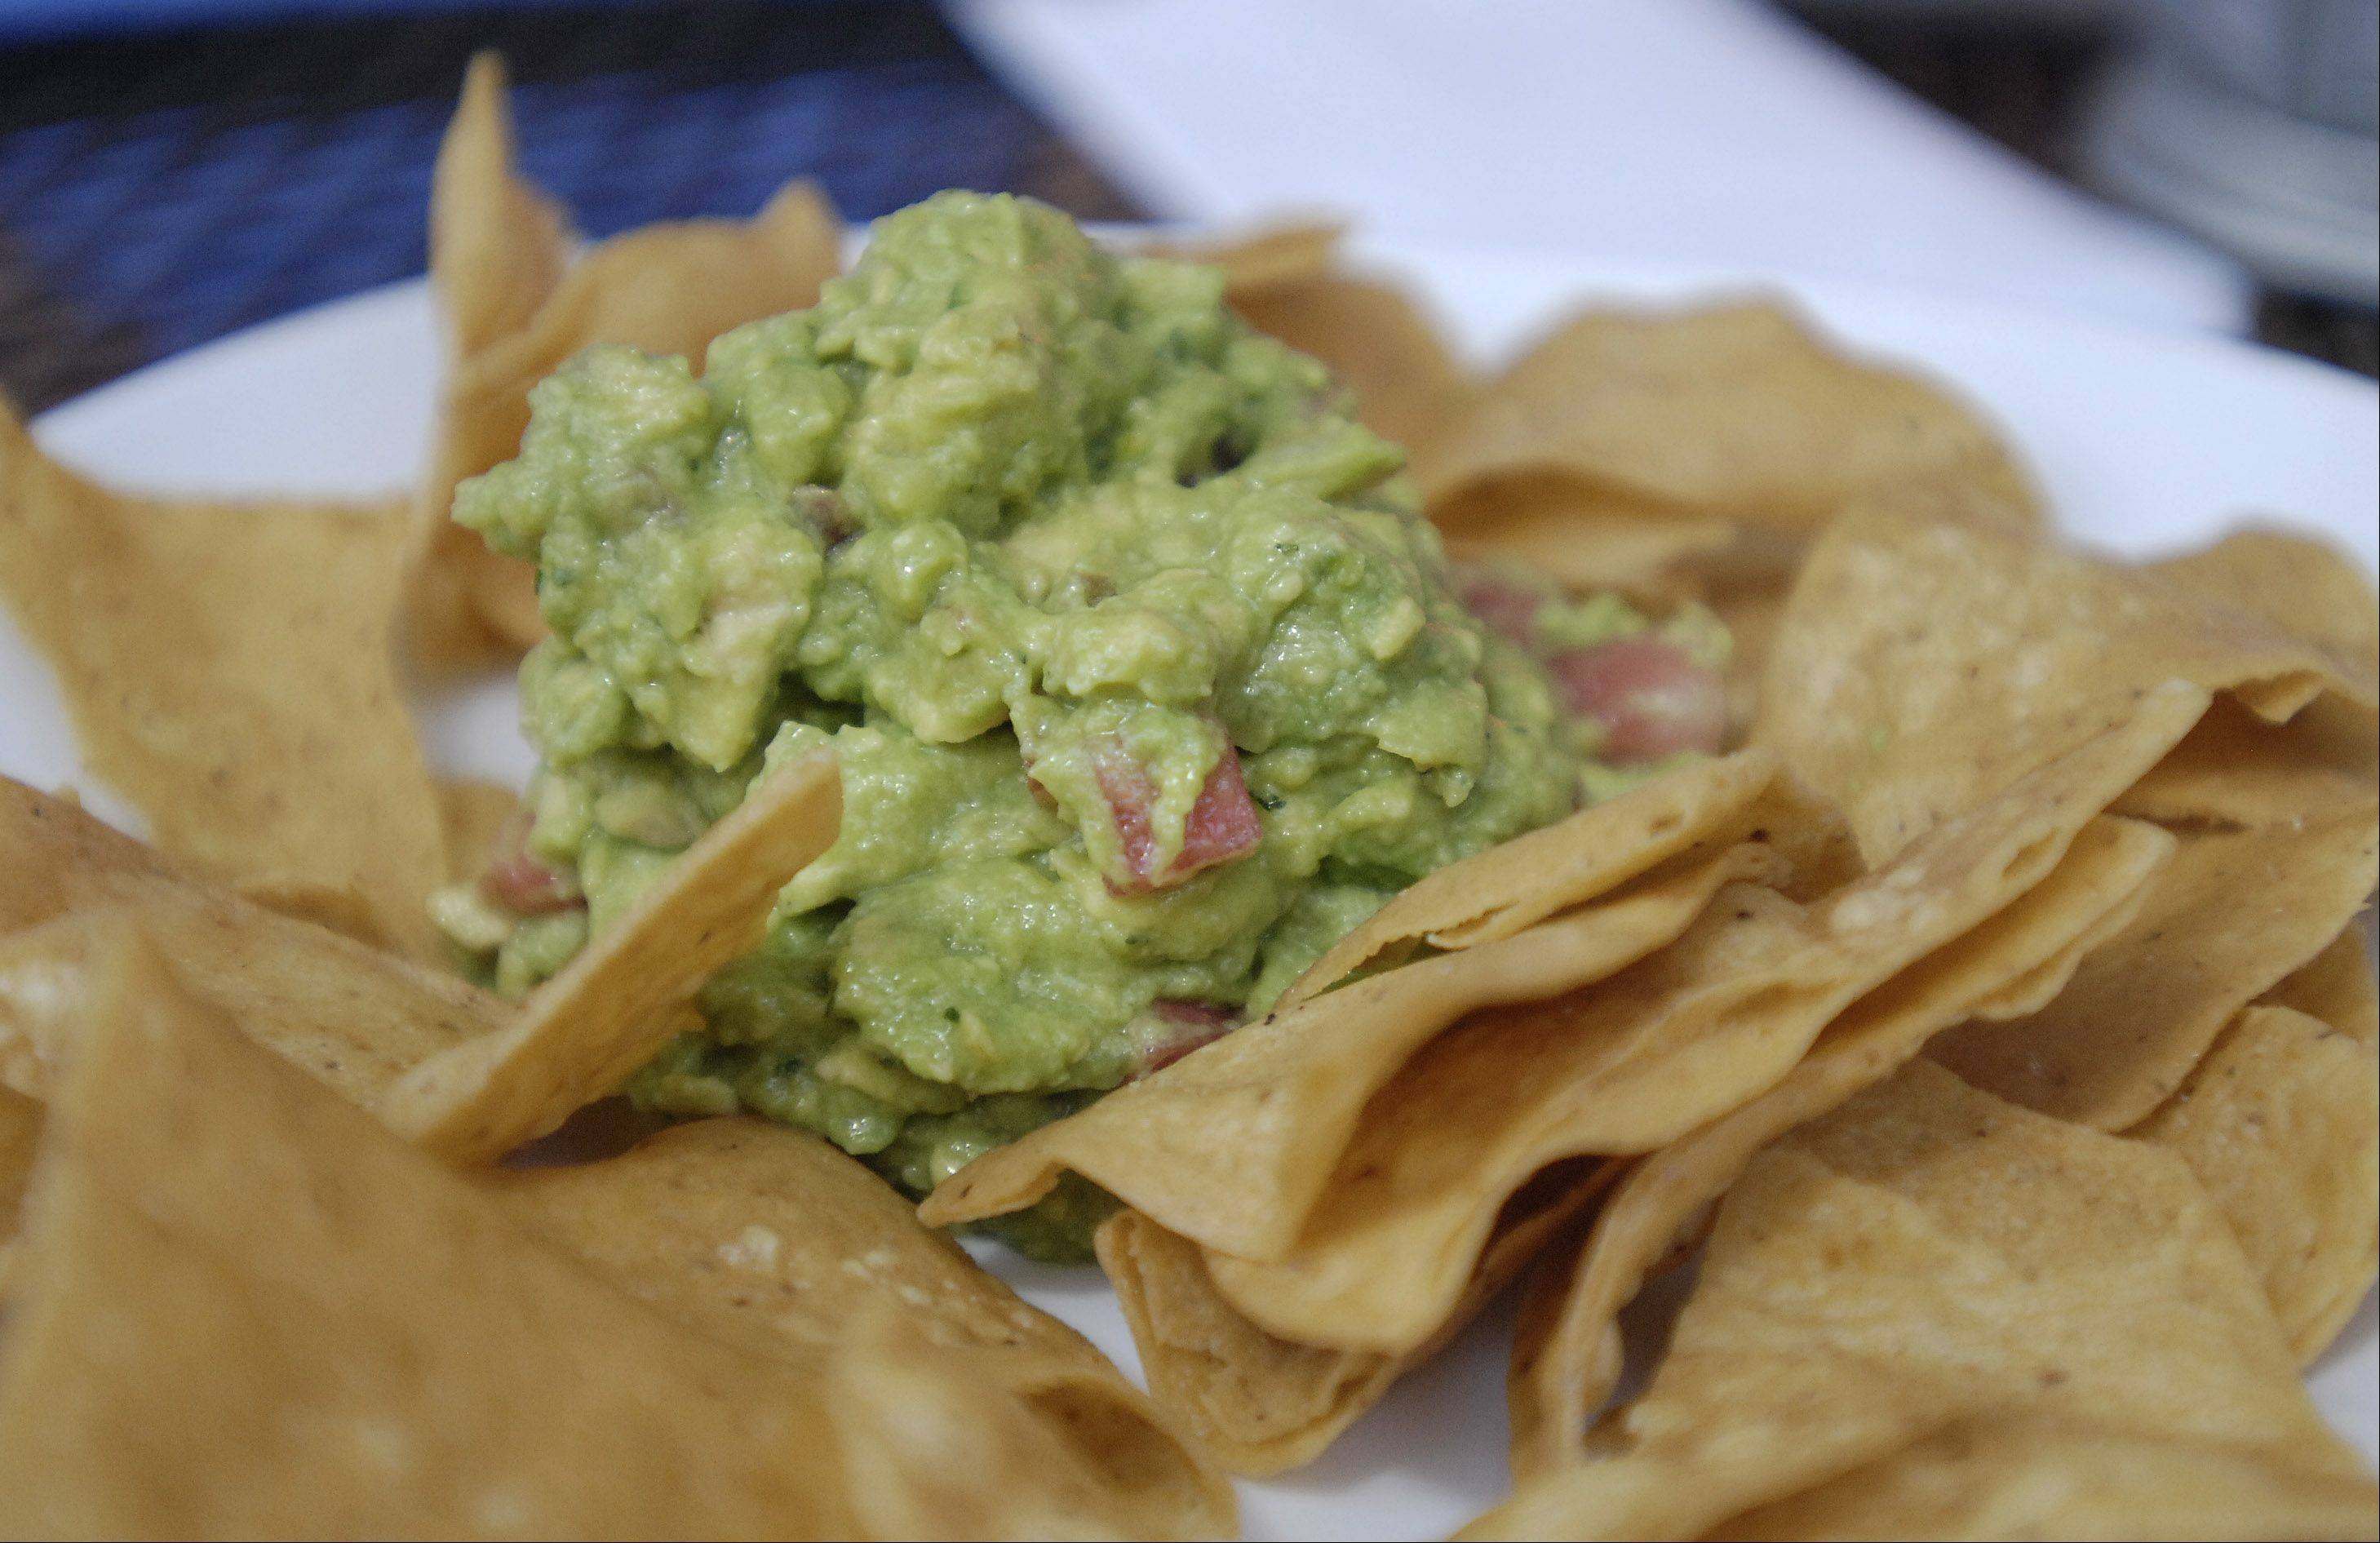 Homemade guacamoles, salsa, tacos and casuelitas are expected to be on the menu when Bien Trucha, a small-plate Mexican restaurant in Geneva, opens a new location in fall 2015 at the Water Street District in downtown Naperville.